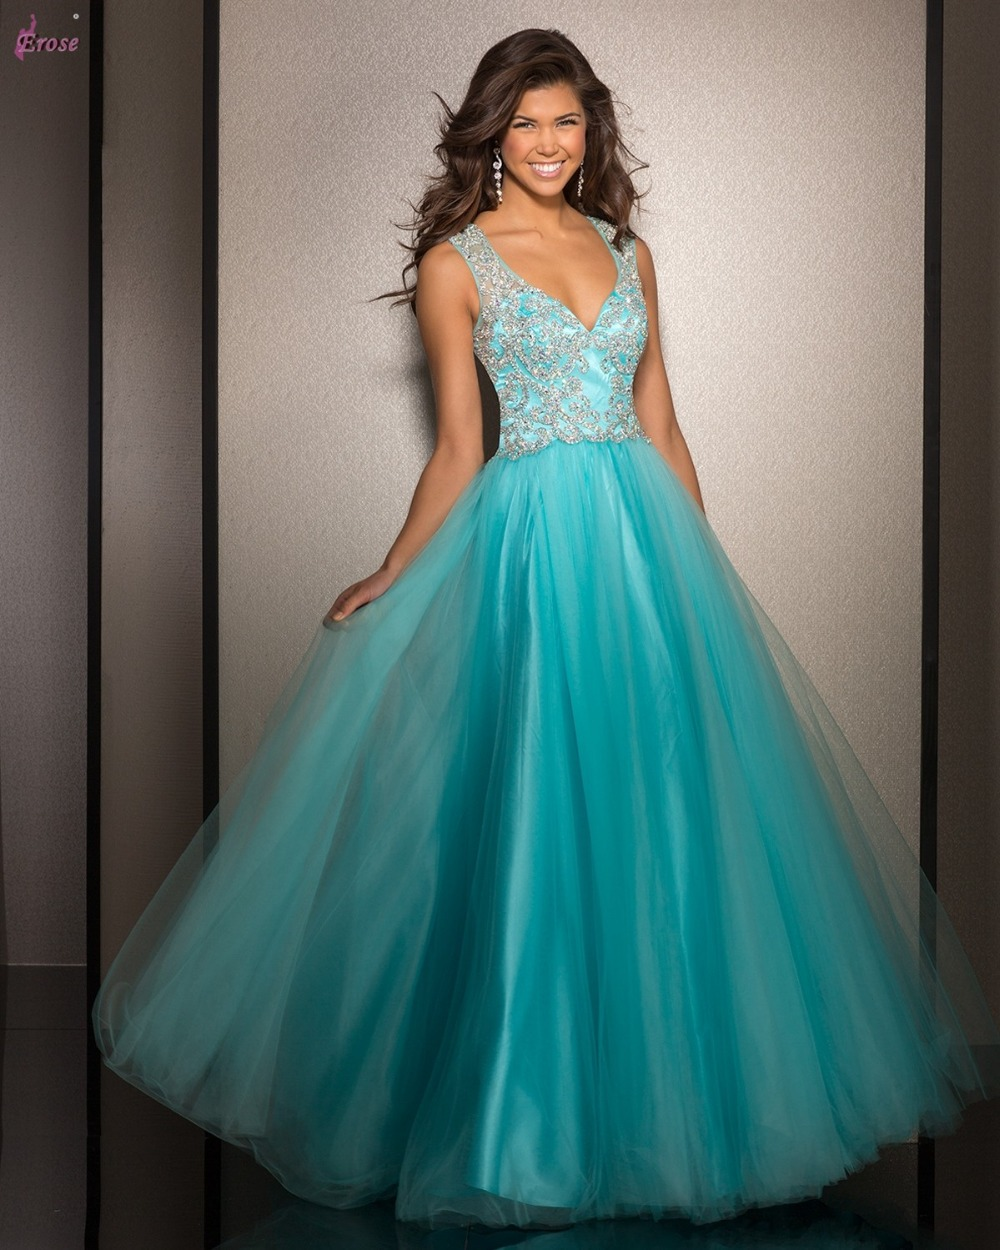 Pretty turquoise prom dresses - Dress on sale